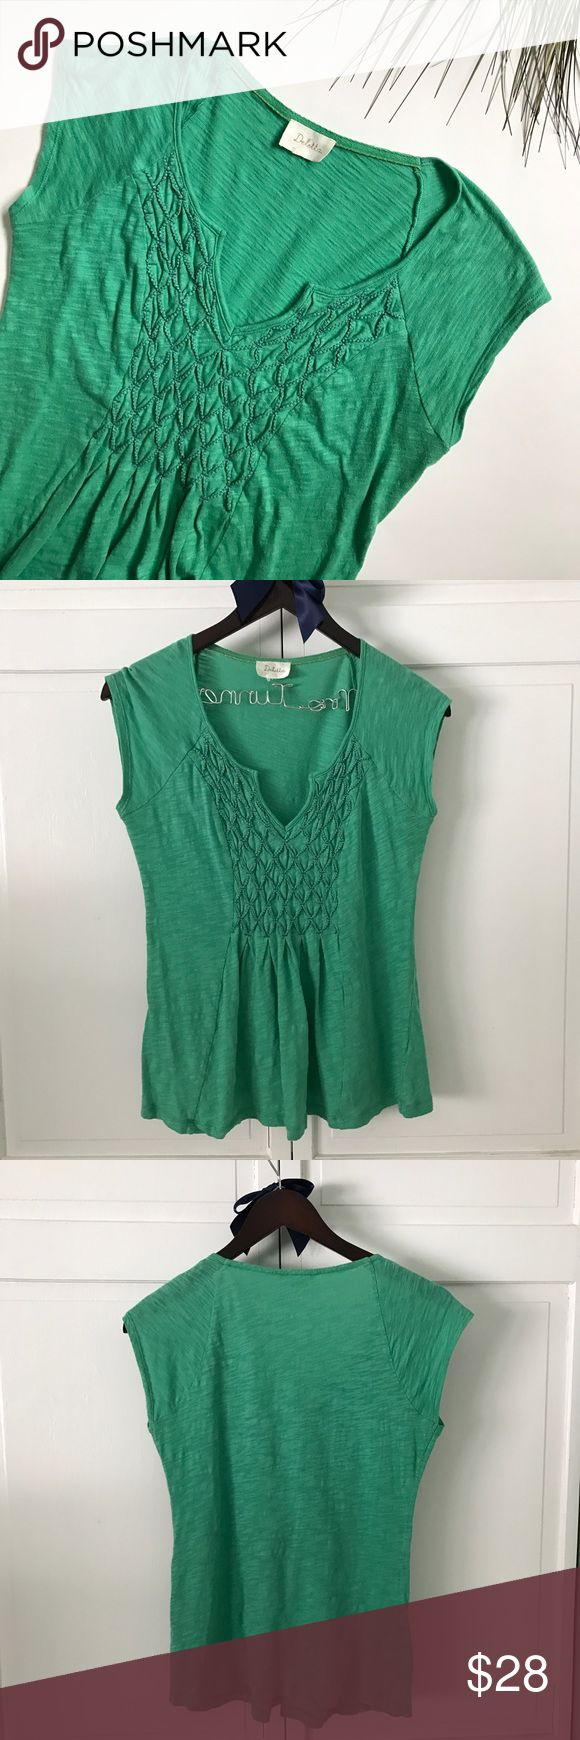 Anthropologie Top Lightweight green short sleeve top by Deletta from Anthropologie. Adorable puckered detail on chest. No size tag (from Anthropologie sample sale) but fits medium (sizes 6 & 8). In great condition, offers welcome. Anthropologie Tops